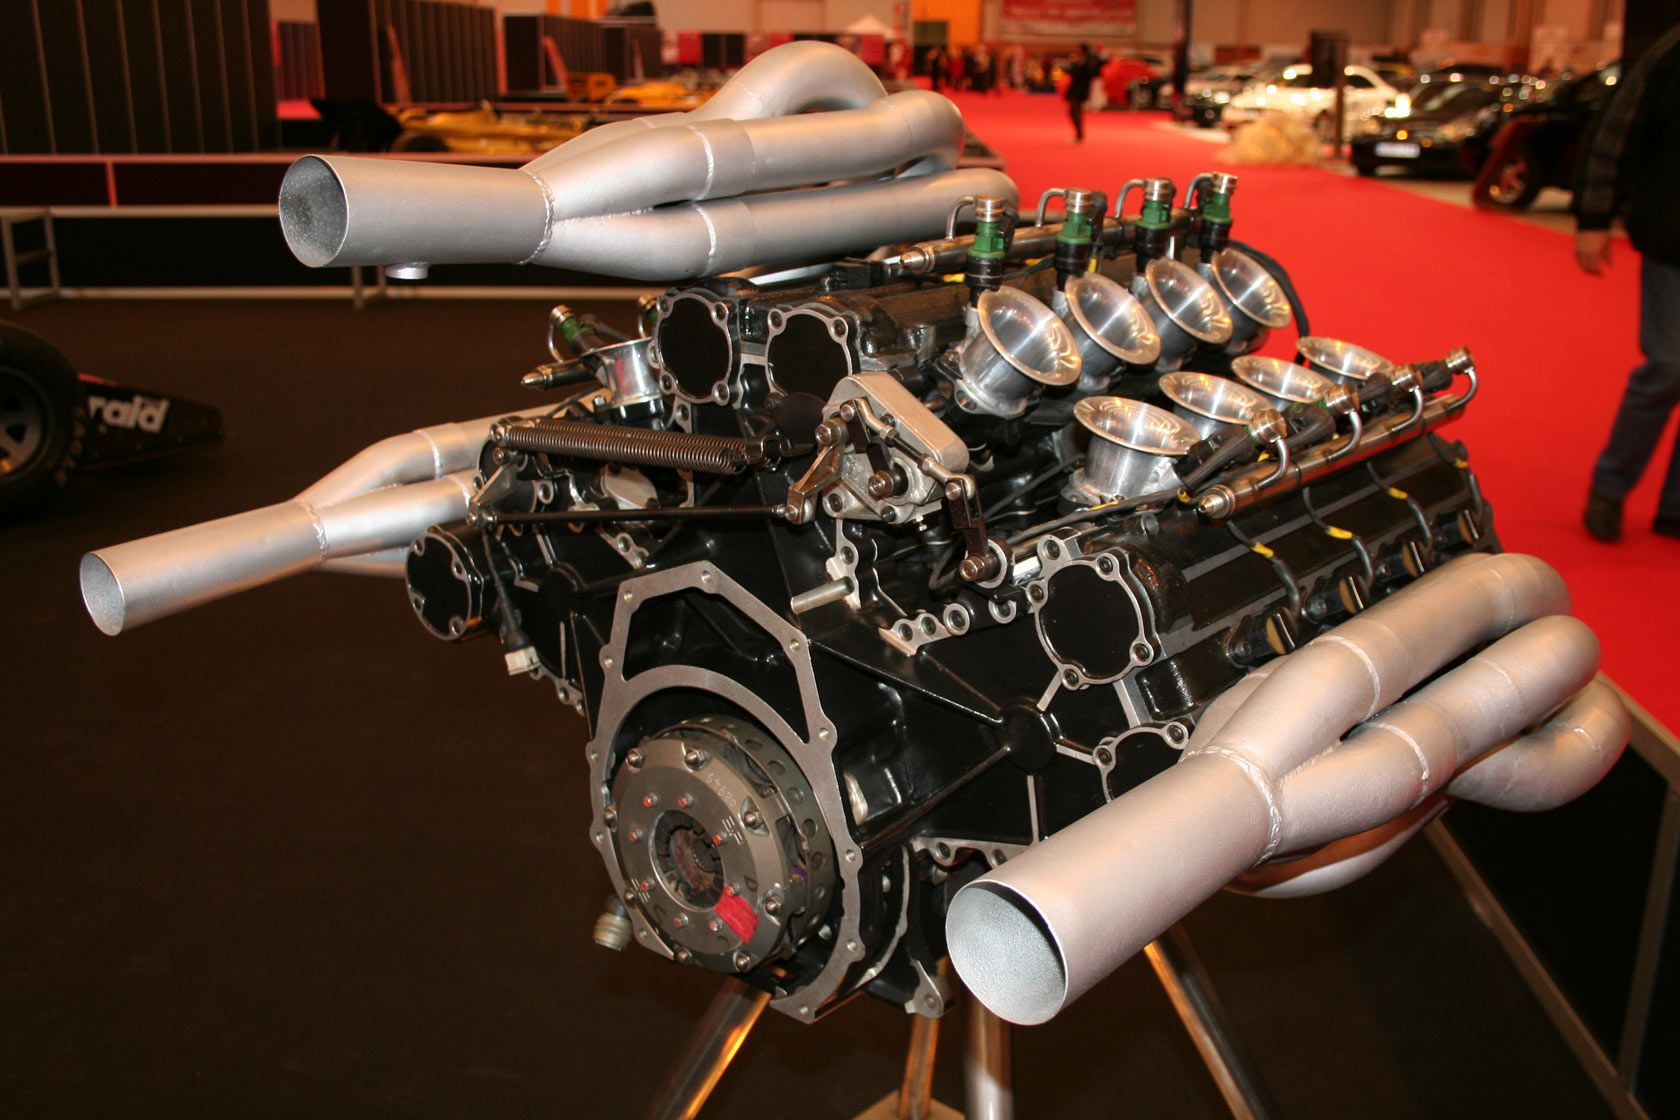 f1 engines? | The Life L190's W12 engine